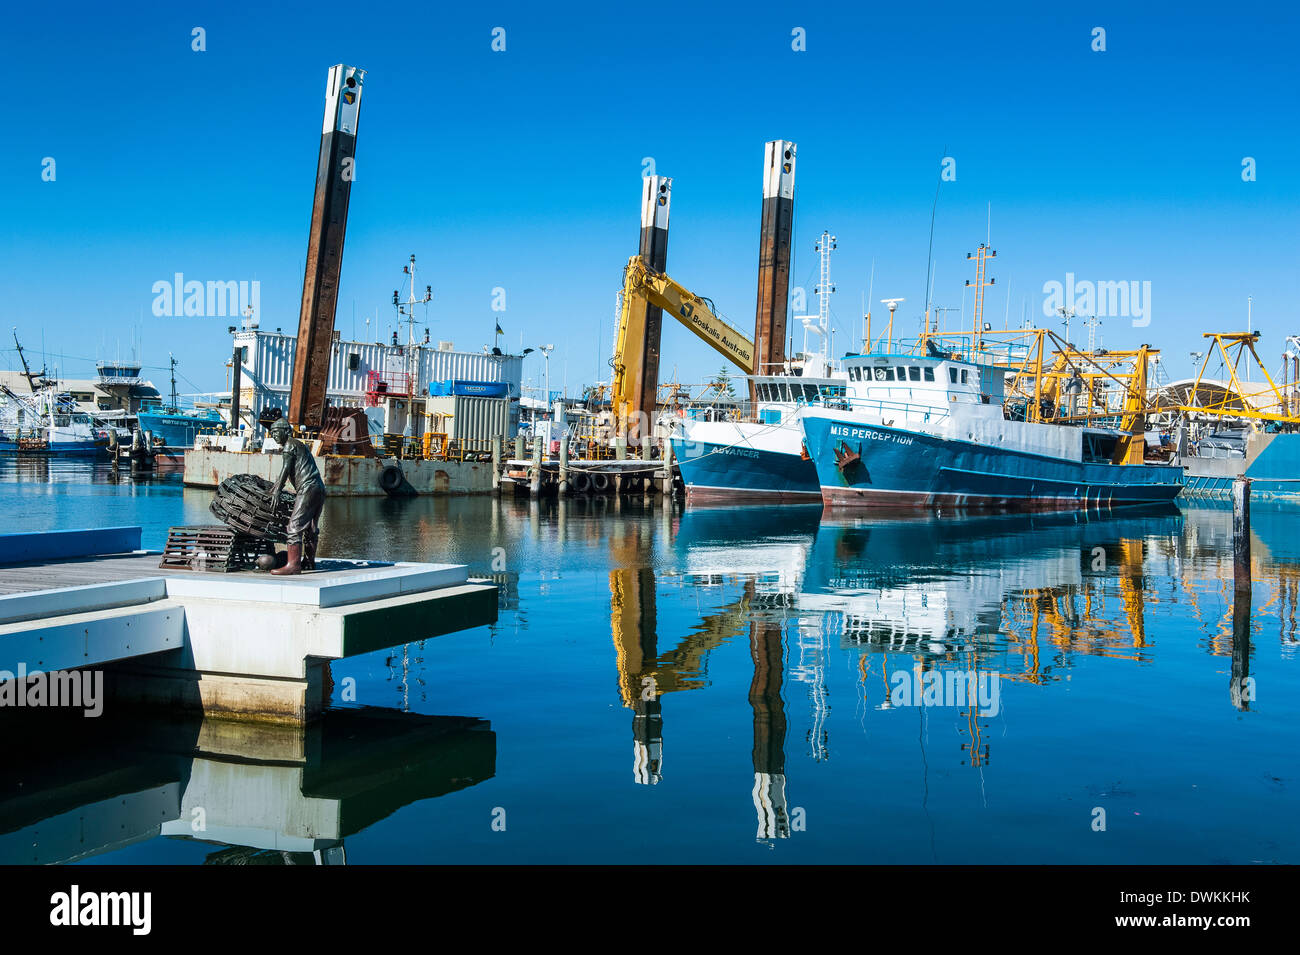 Fishing boat harbour of Fremantle, Western Australia, Australia, Pacific - Stock Image